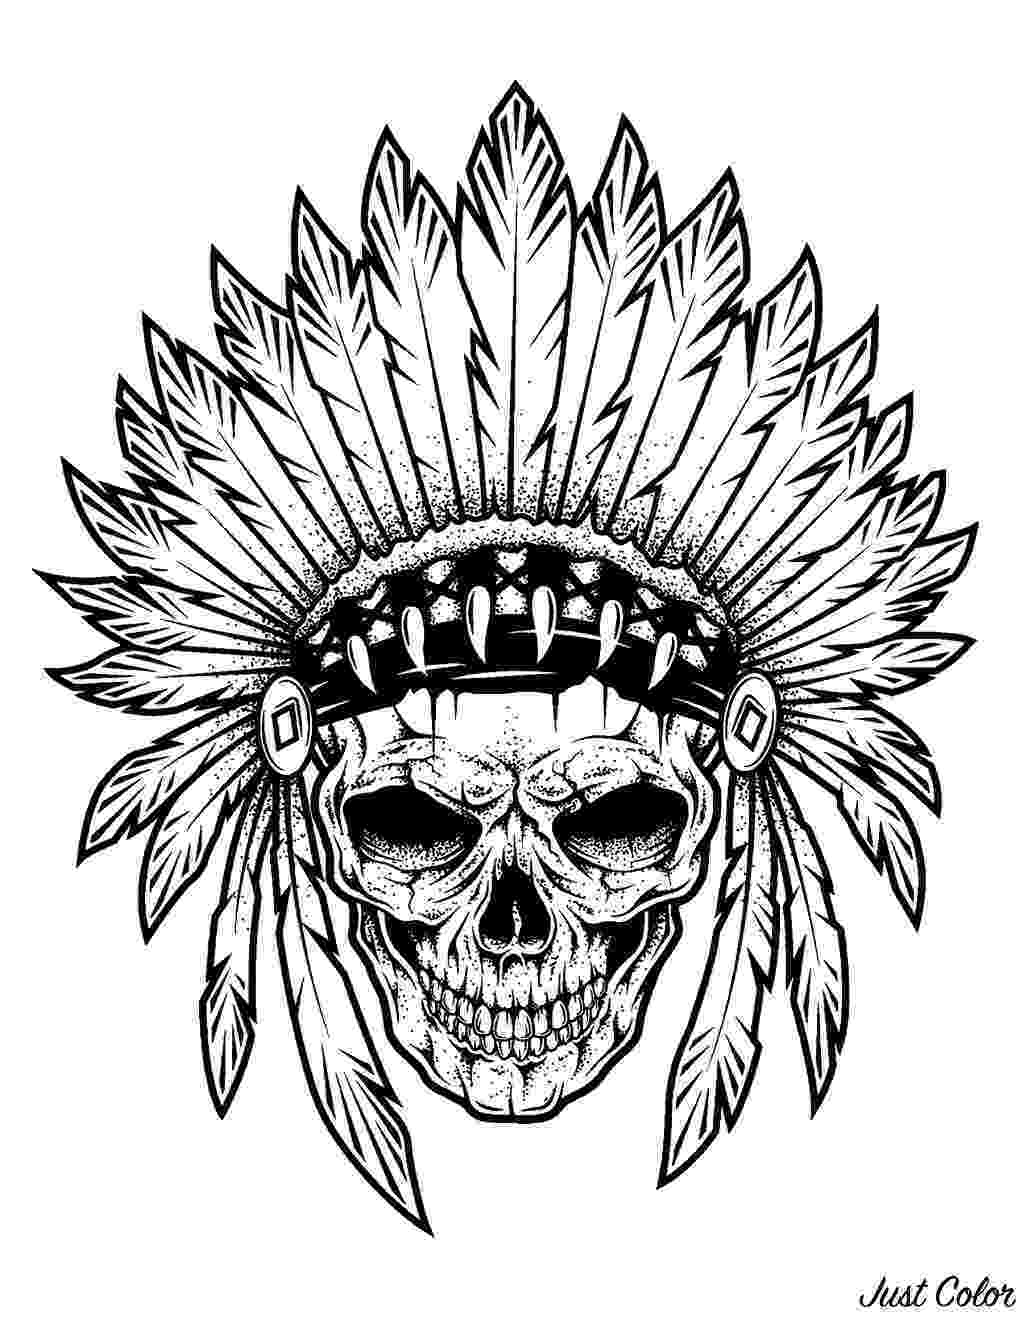 coloring pages for tattoos tattoo indian chief skull tattoos adult coloring pages pages coloring tattoos for